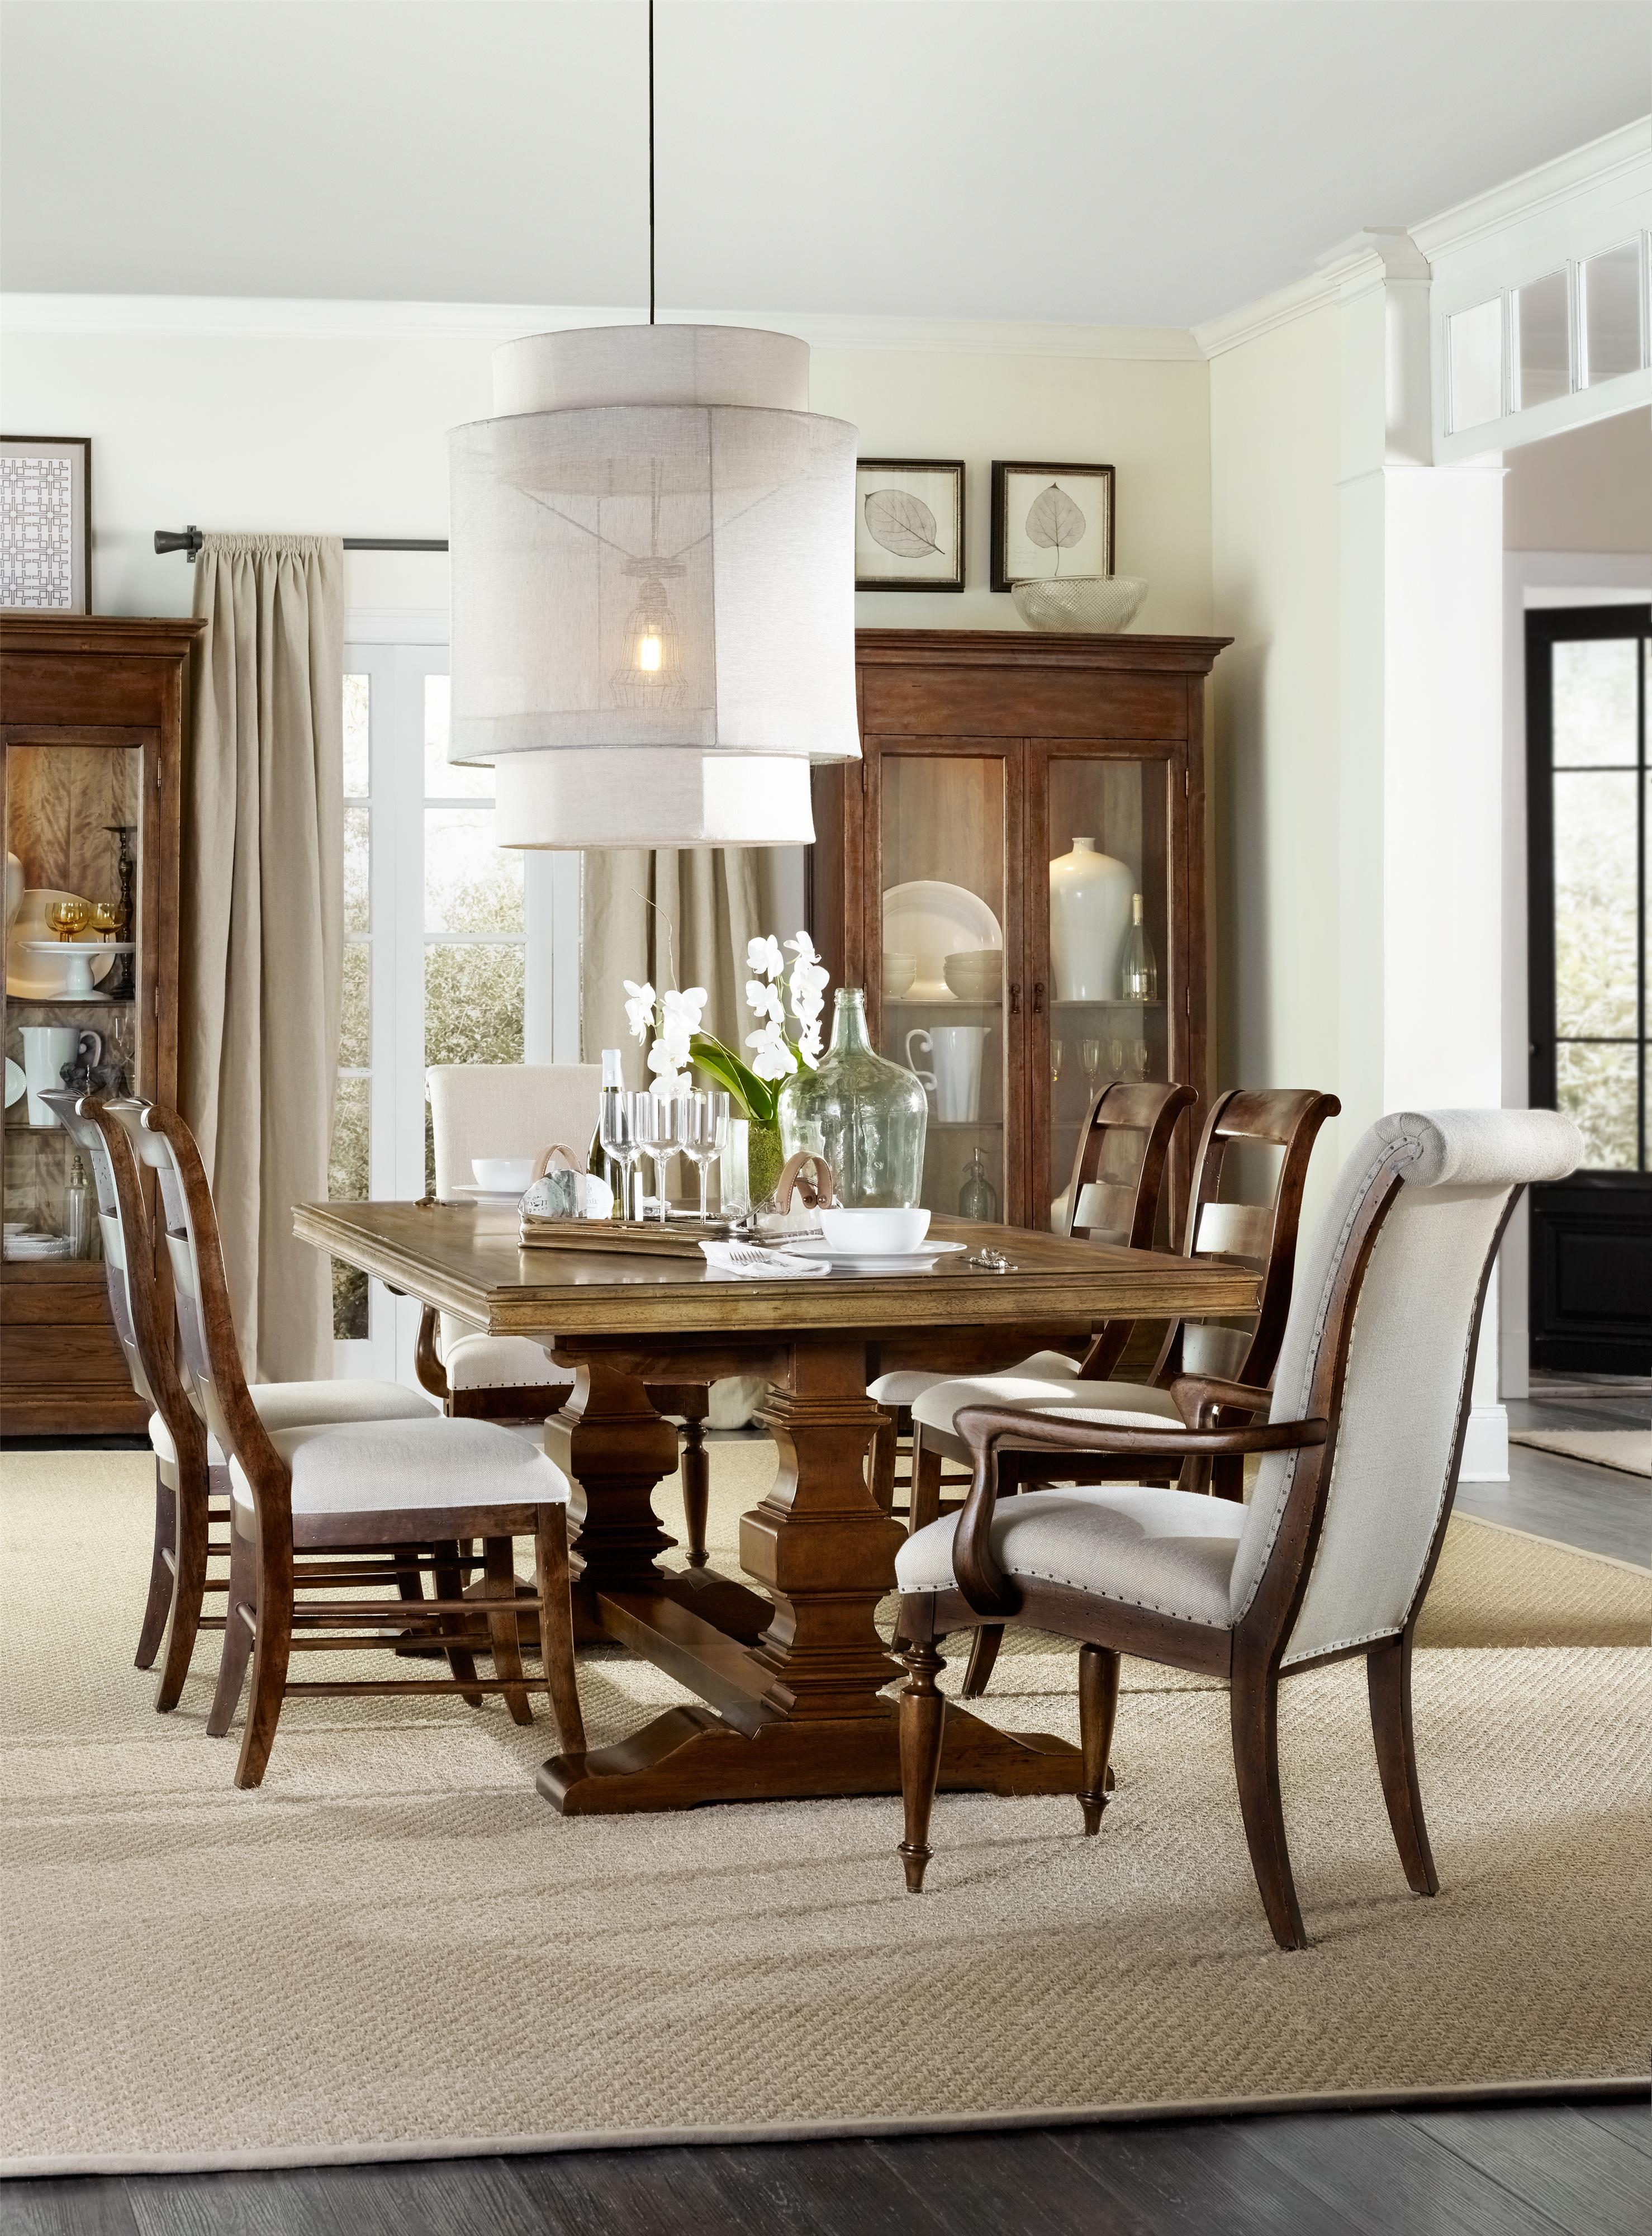 Hamilton Home Sentinel: Pecan Formal Dining Room Group - Item Number: 5447 Toffee Dining Room Group 1